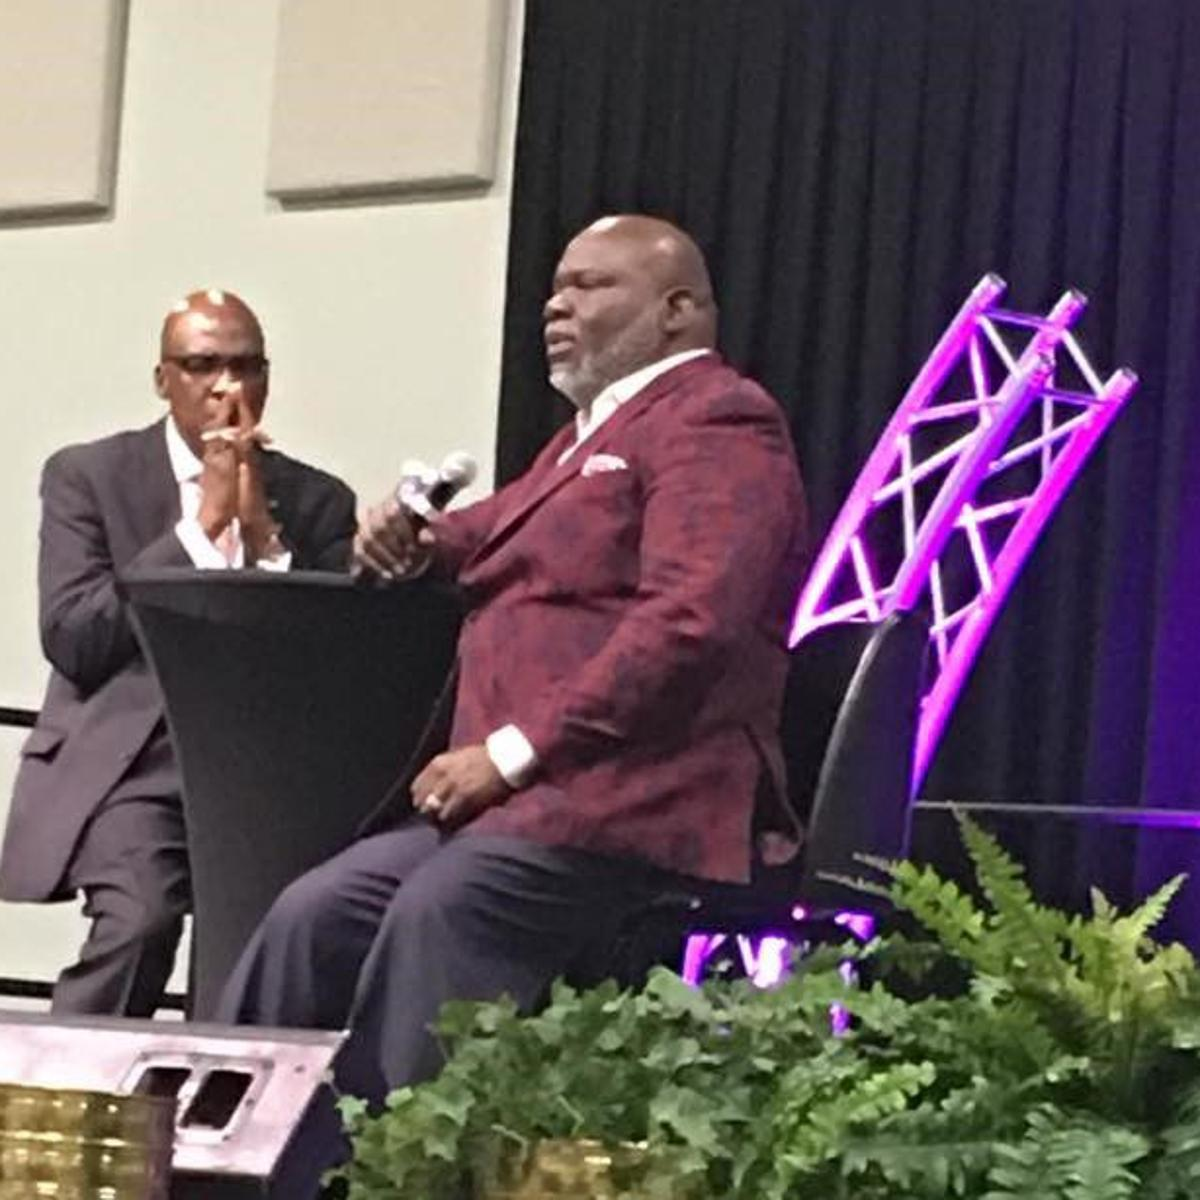 td jakes leadership conference 2020